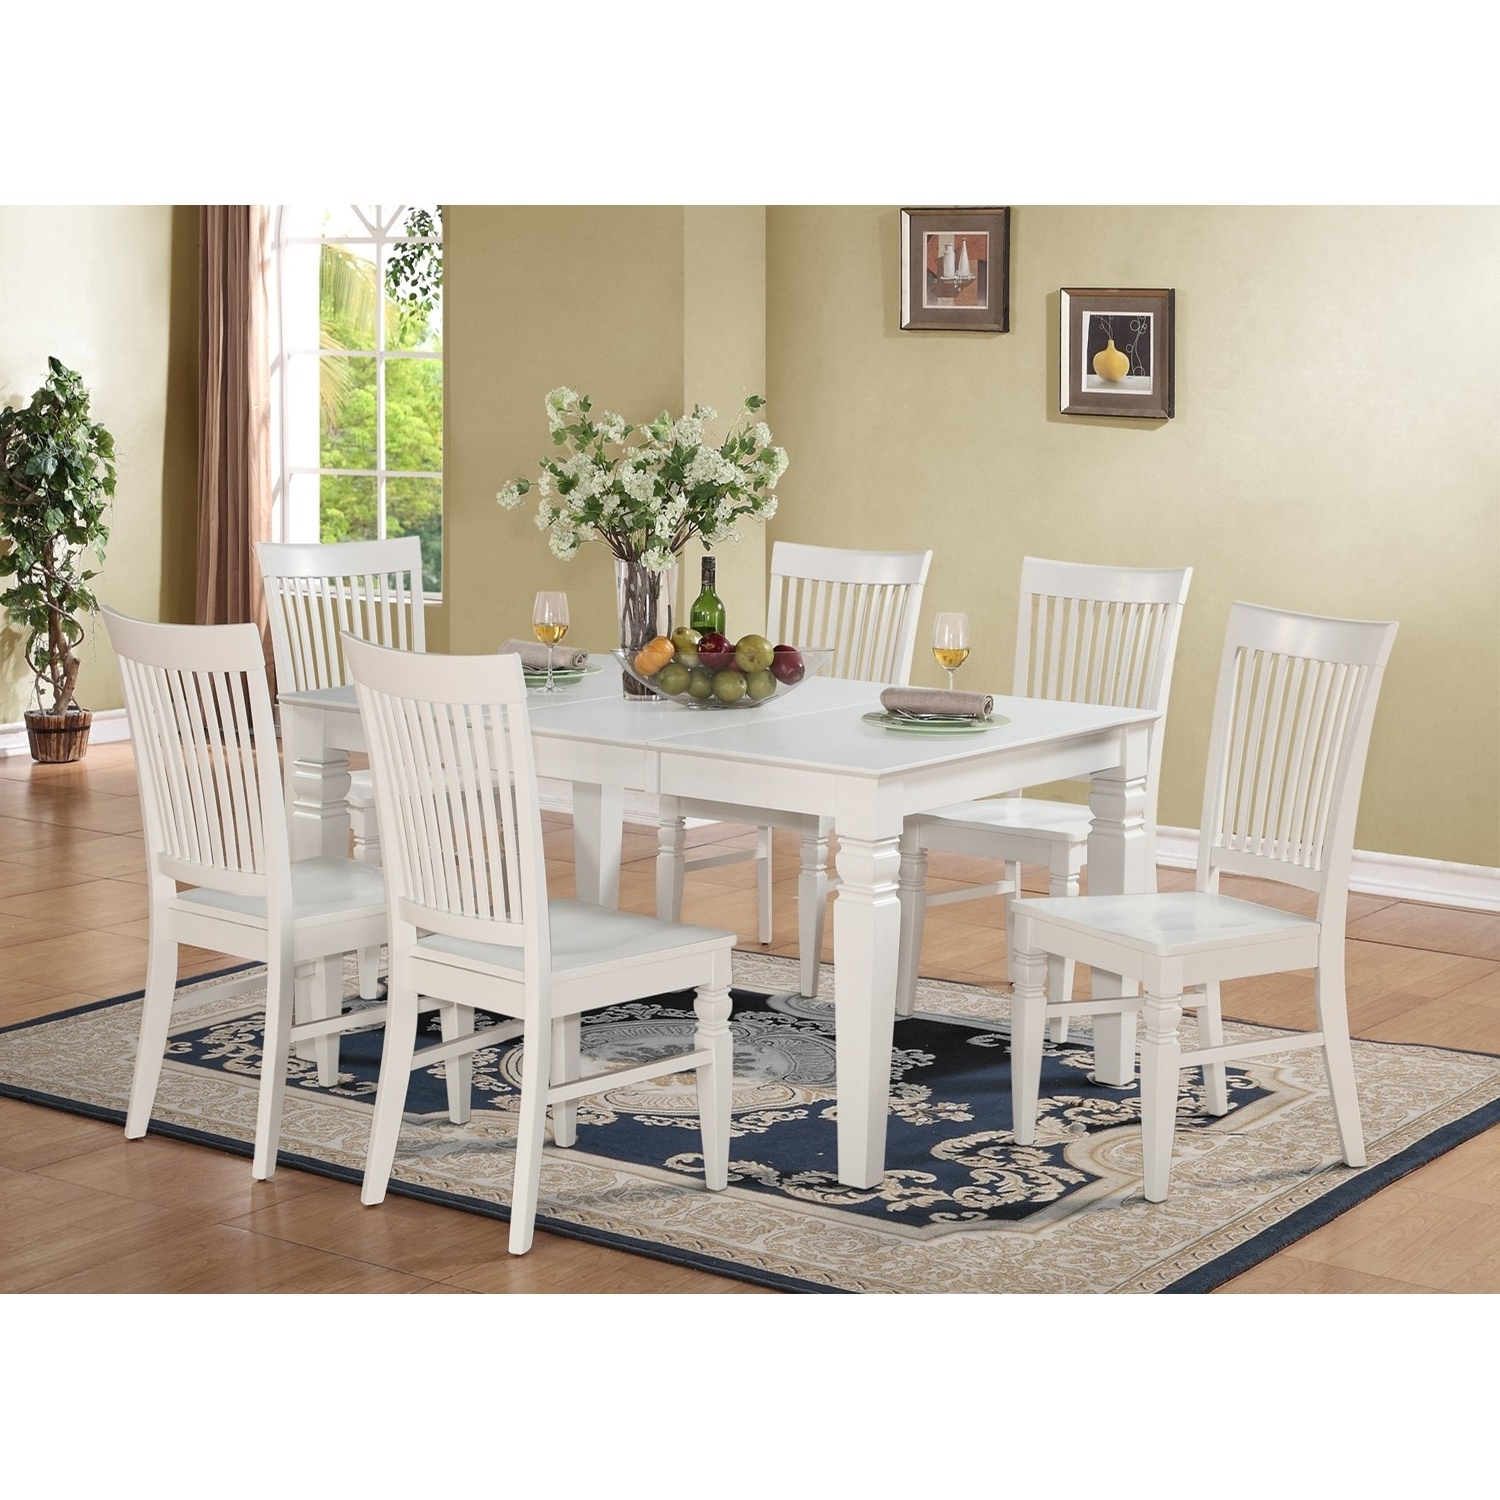 East West Furniture West7 Whi W – Weston 7 Piece White Dining Set Within Fashionable White Dining Sets (Gallery 14 of 25)